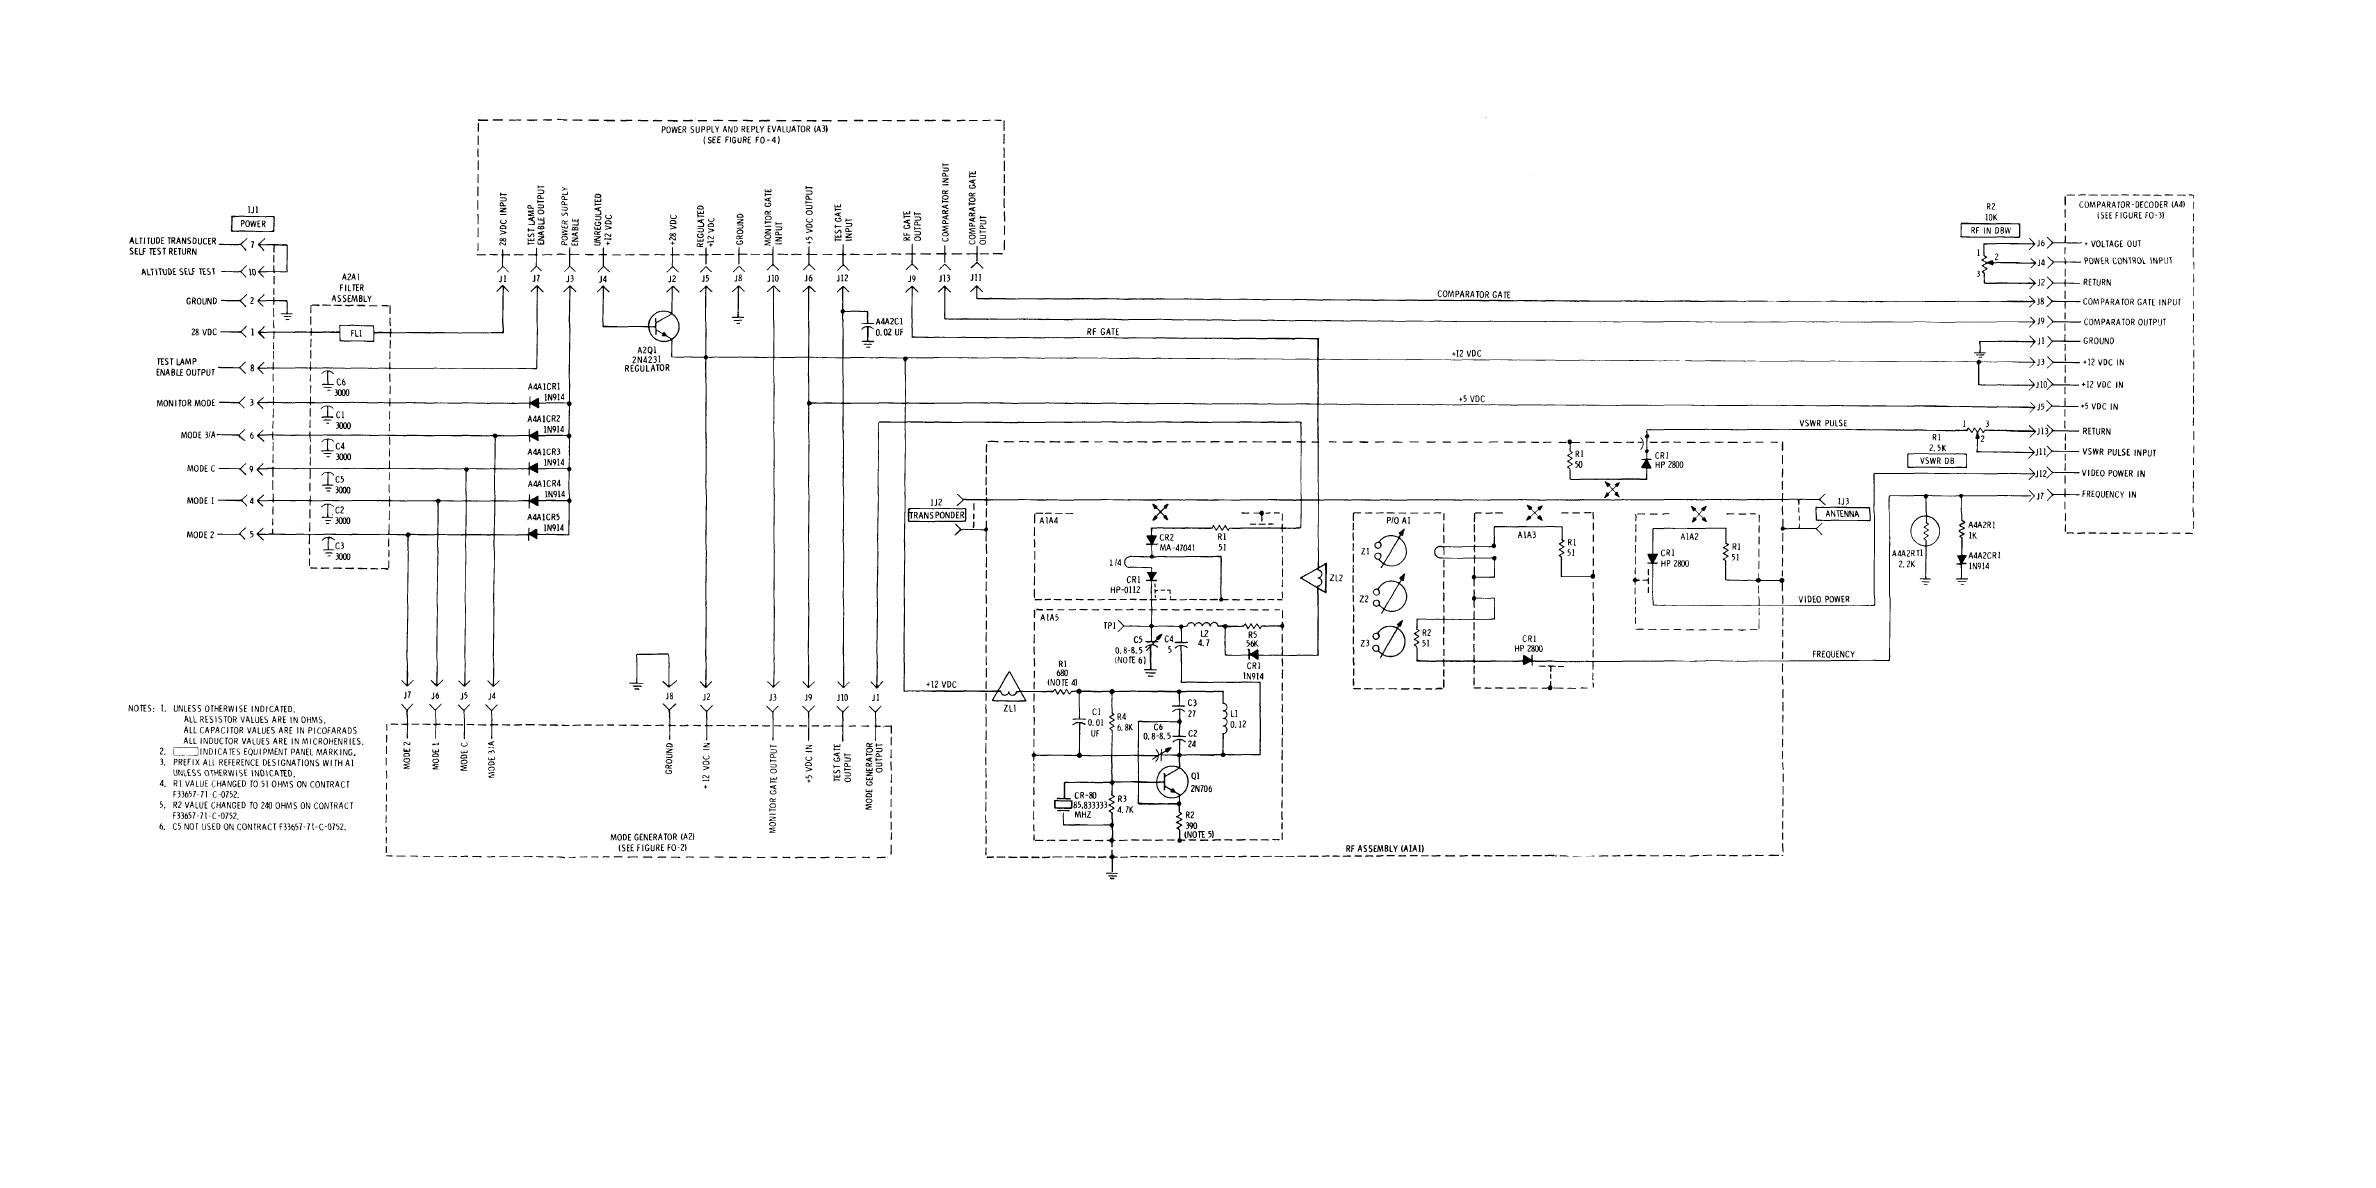 Figure Fo 5 Main Frame Assembly Al Schematic Diagram